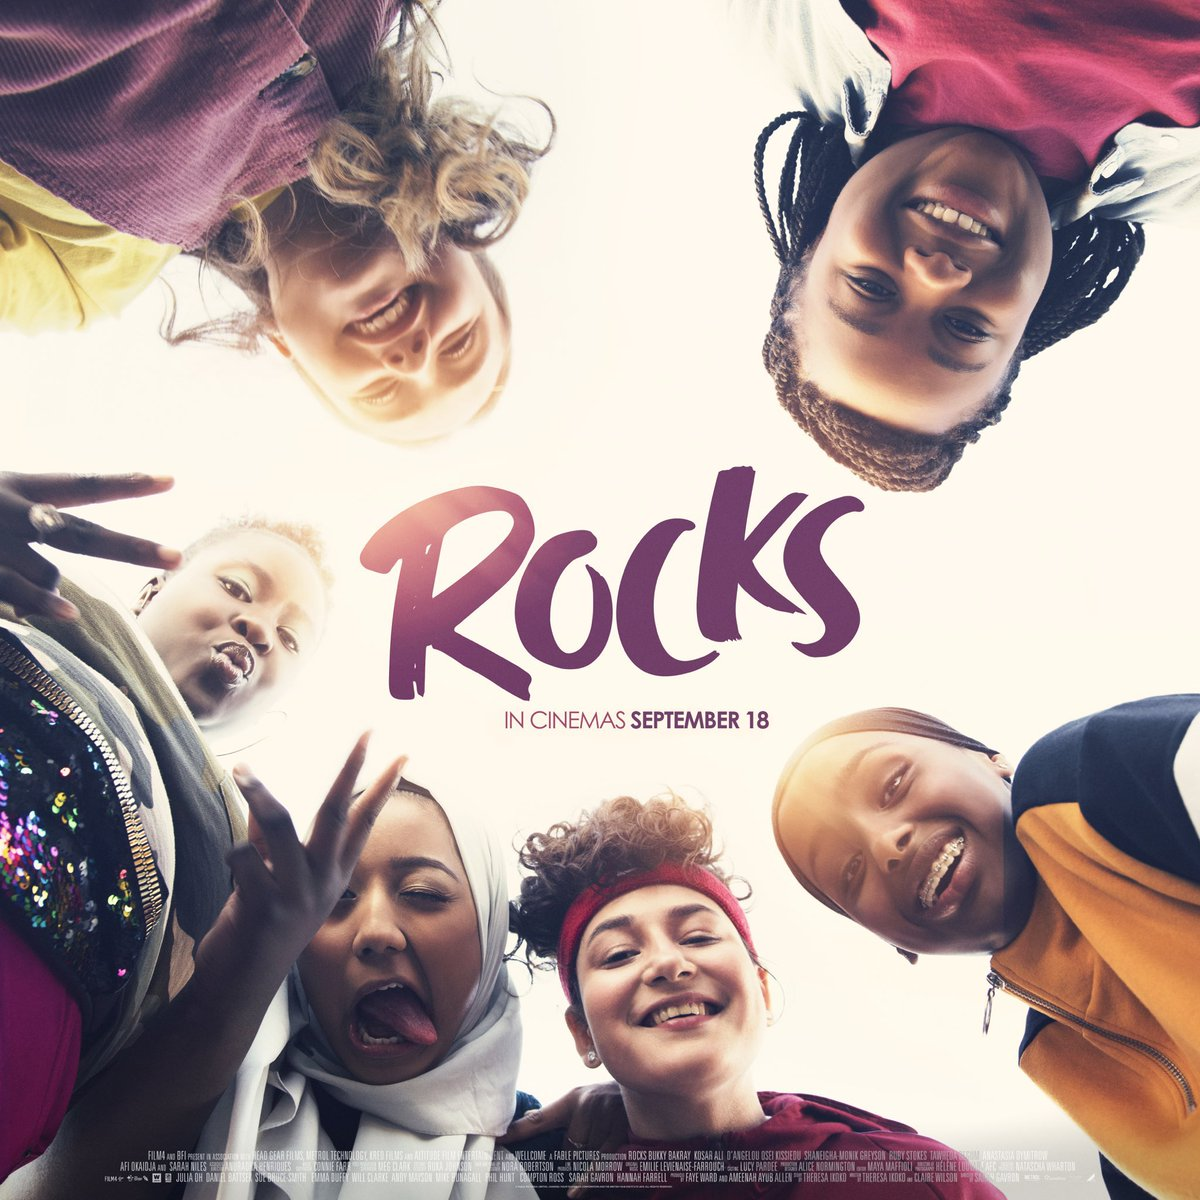 Everyone google this film and go to you're nearest cinema to watch it! @RocksTheFilm 😉